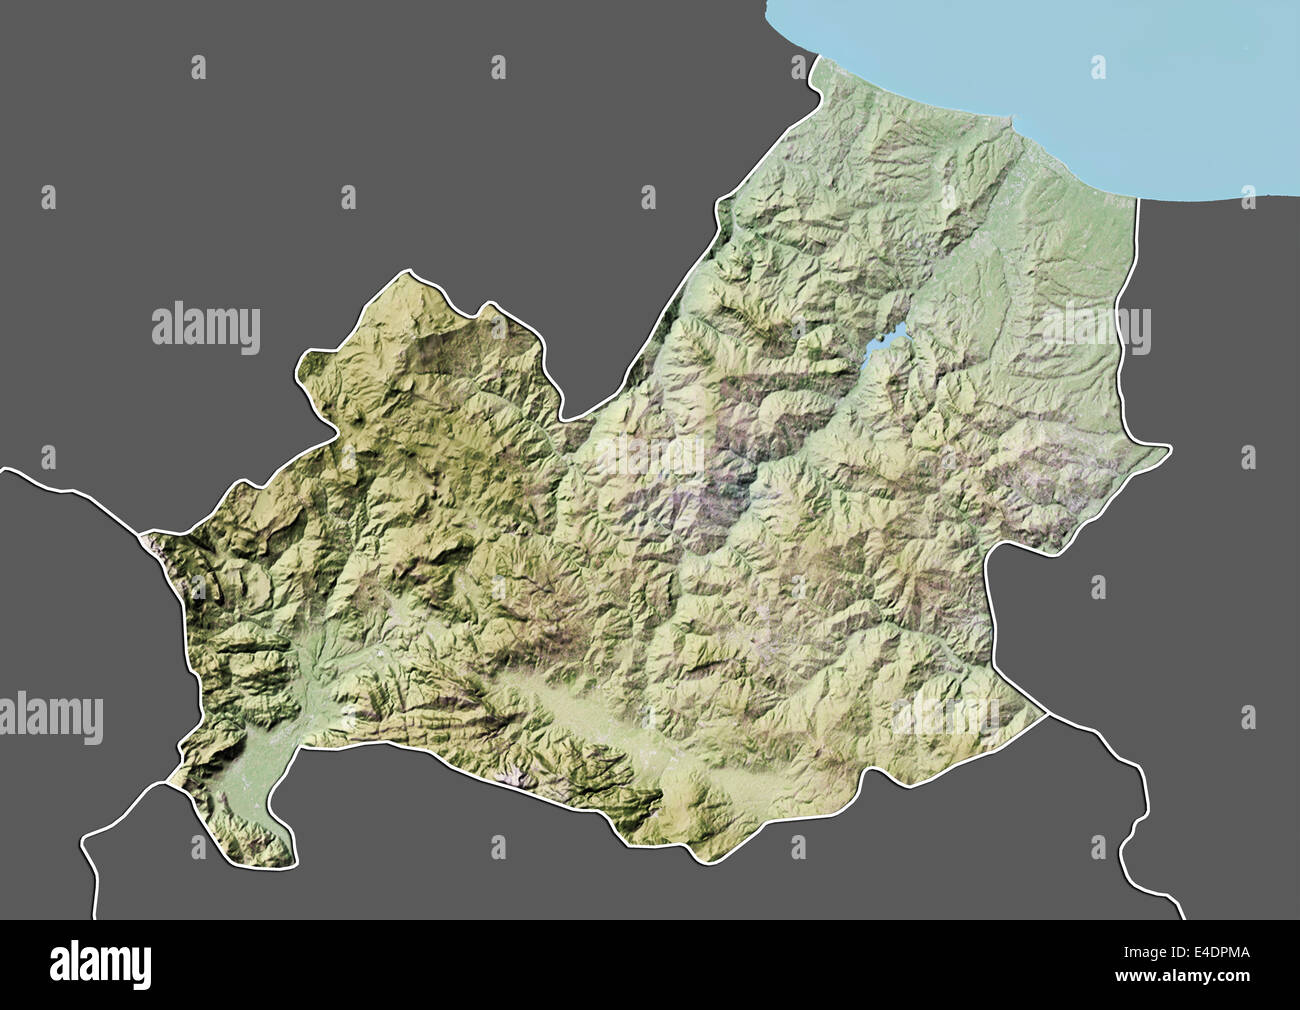 Regione Molise Cartina Fisica.Map Of Molise High Resolution Stock Photography And Images Alamy